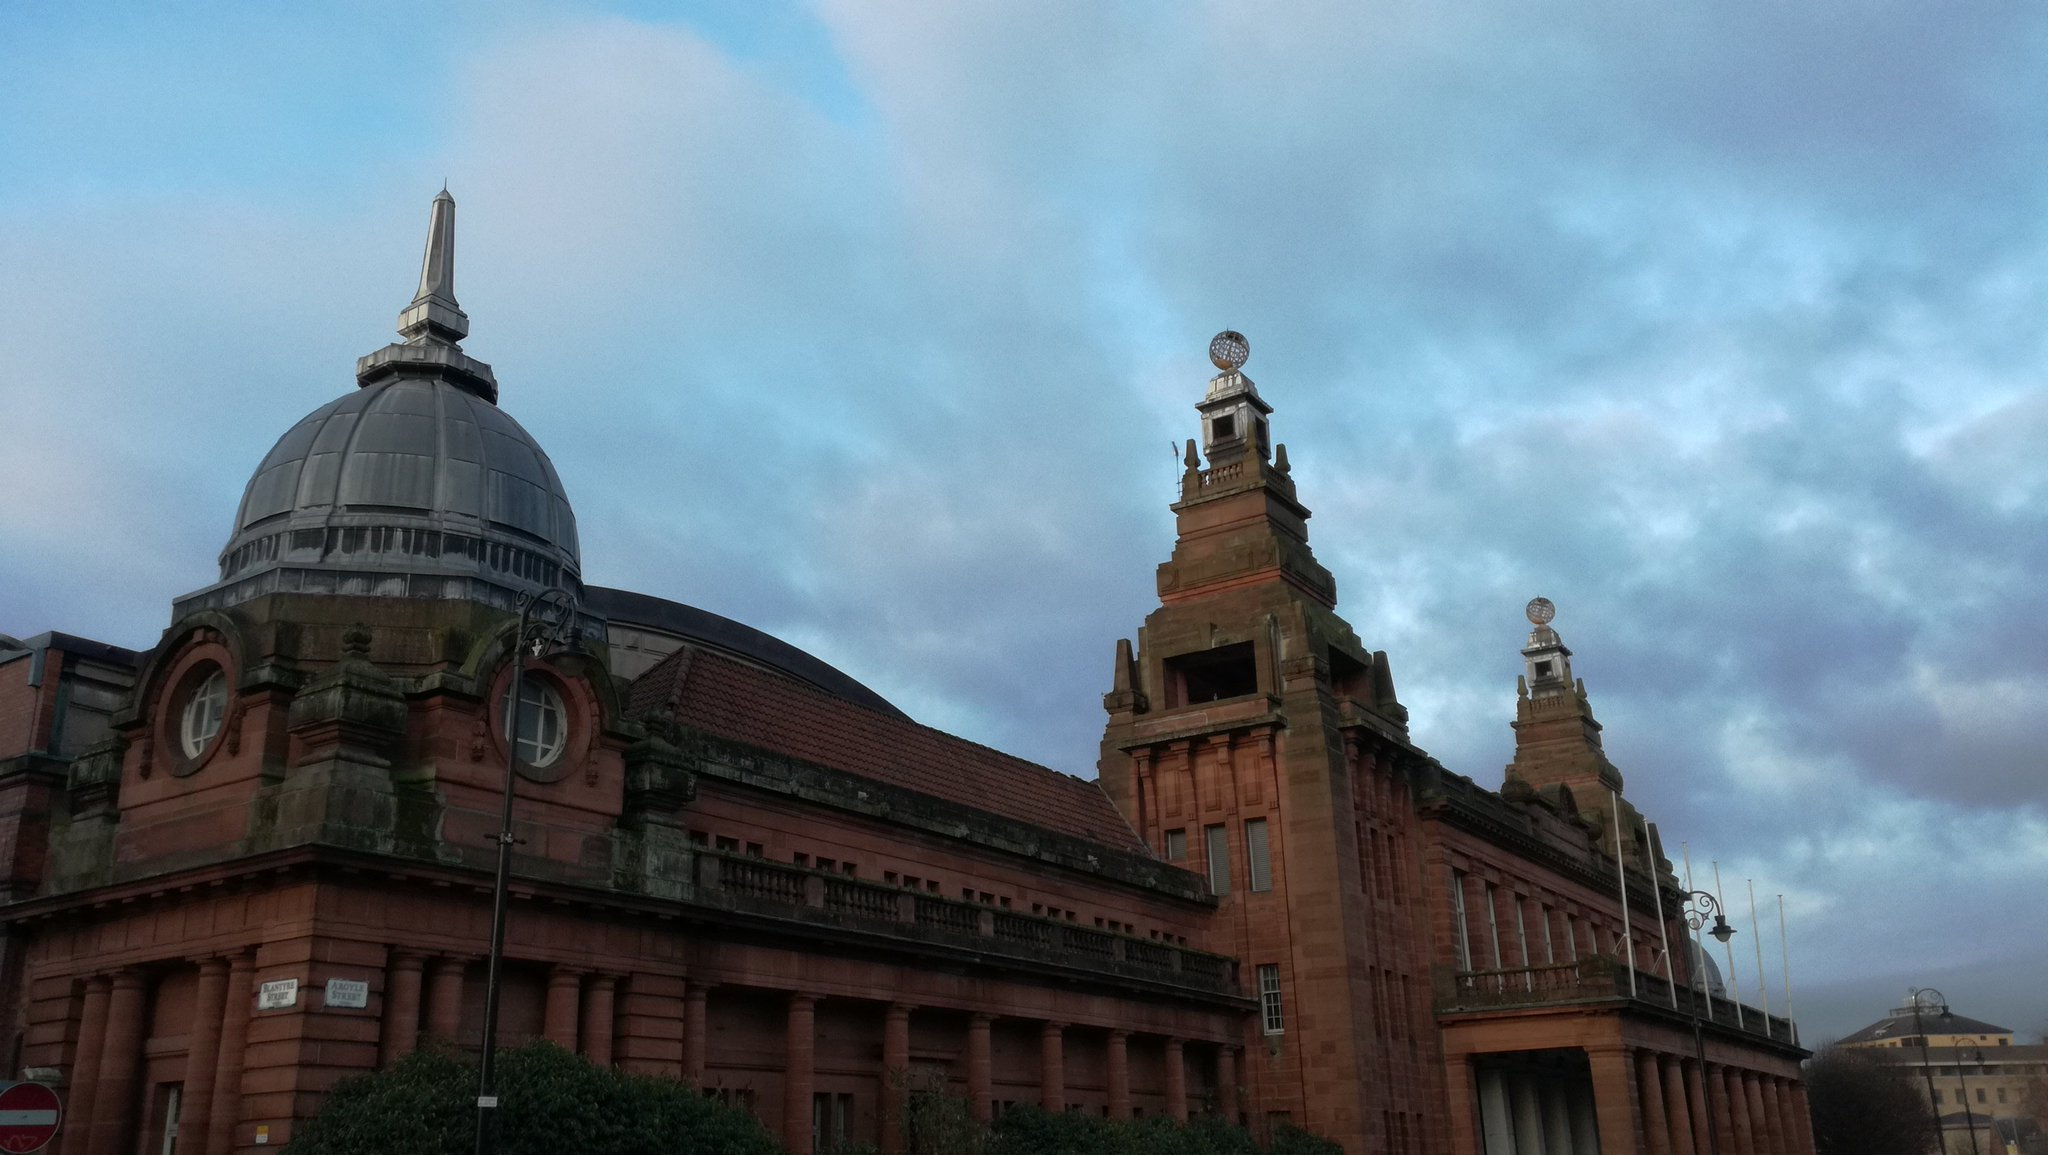 I'm in Glasgow today and tomorrow for the #EDCR2016 conference at the wonderful Kelvin Hall https://t.co/jMsYJ5ZkJ3